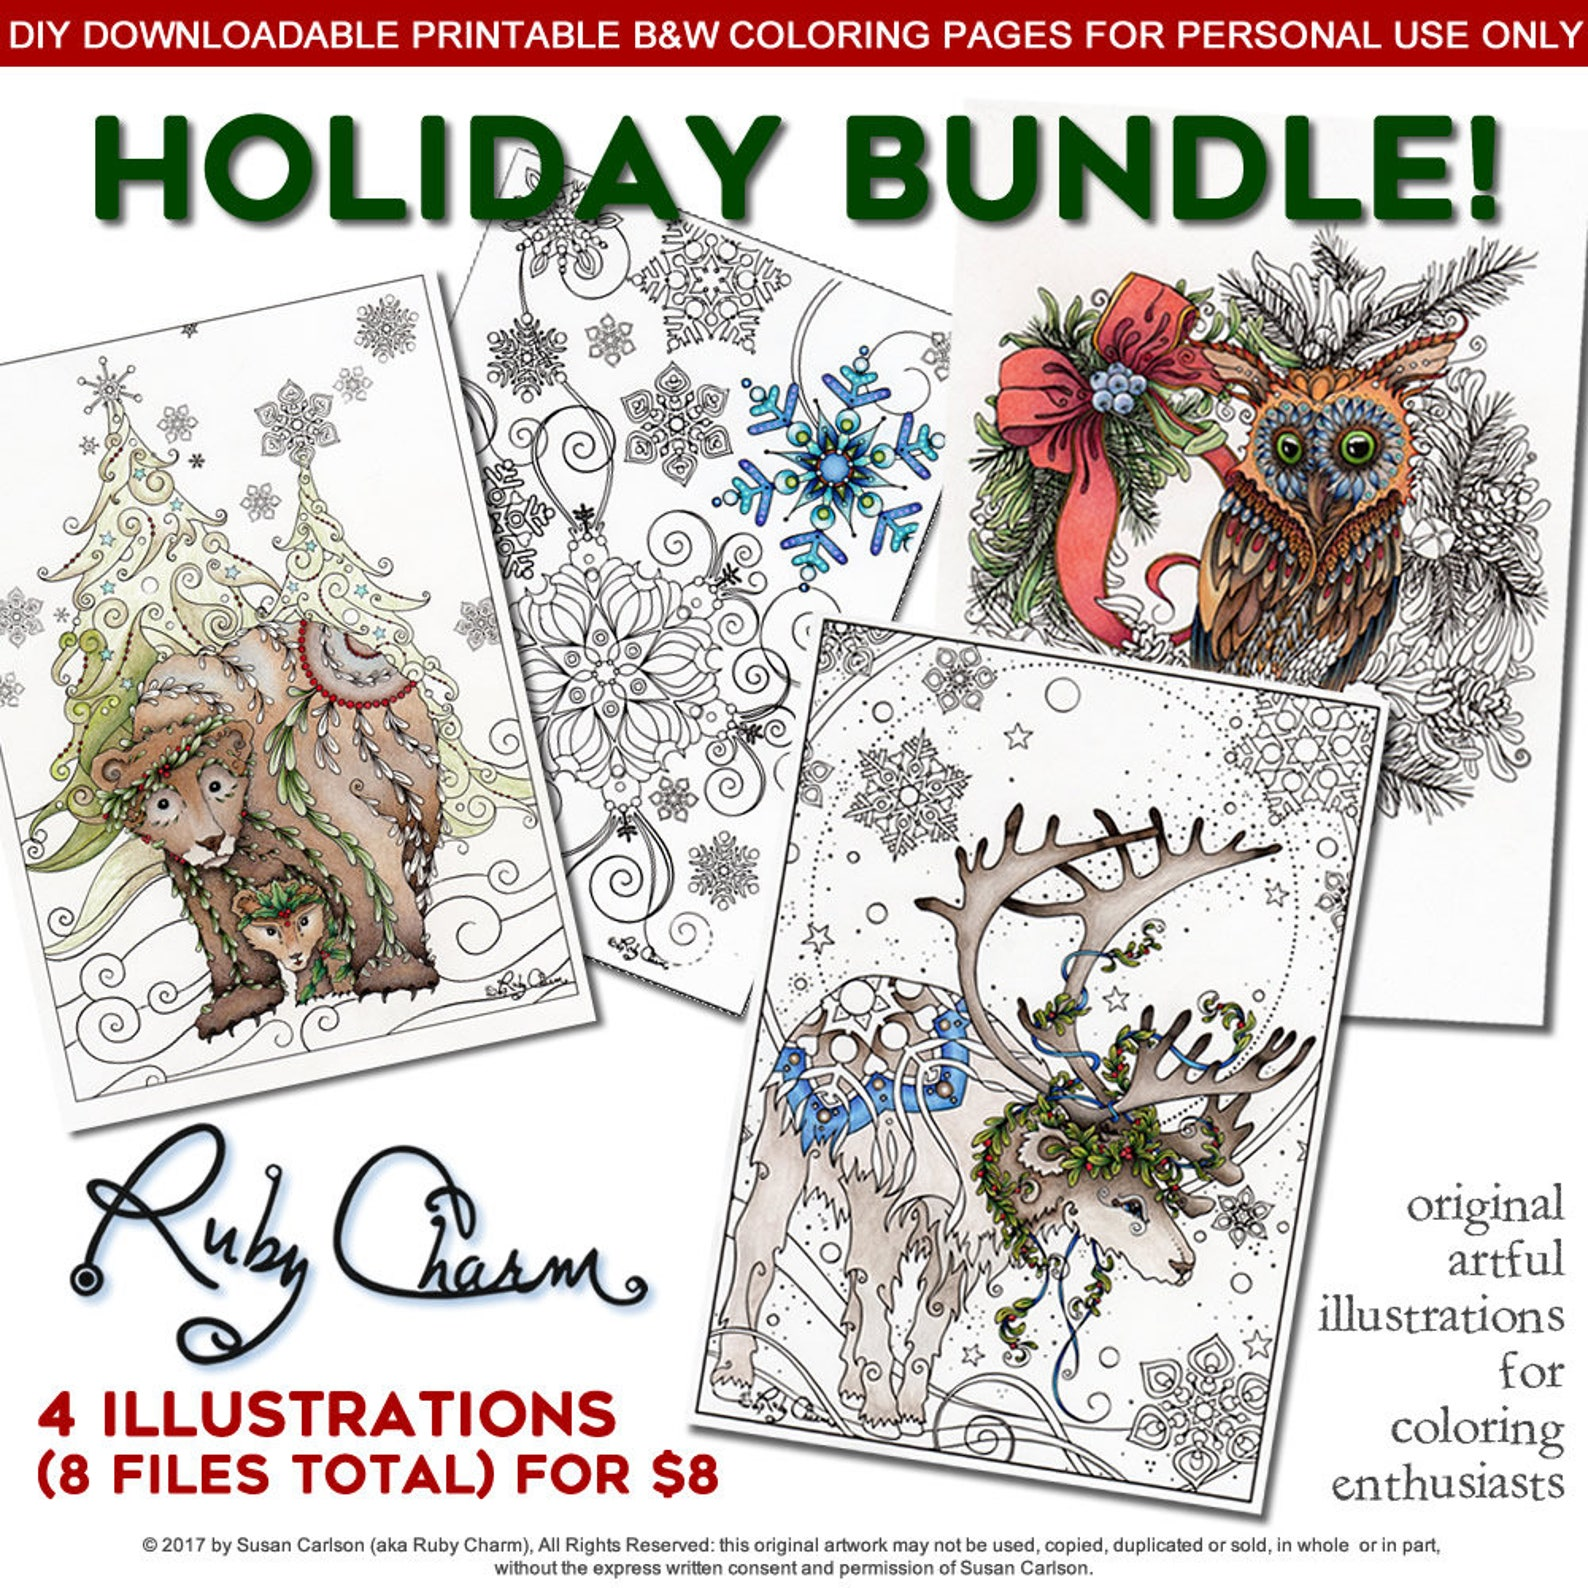 Ruby Charm Colors has some absolutely adorable holiday images here in this bundle on Etsy